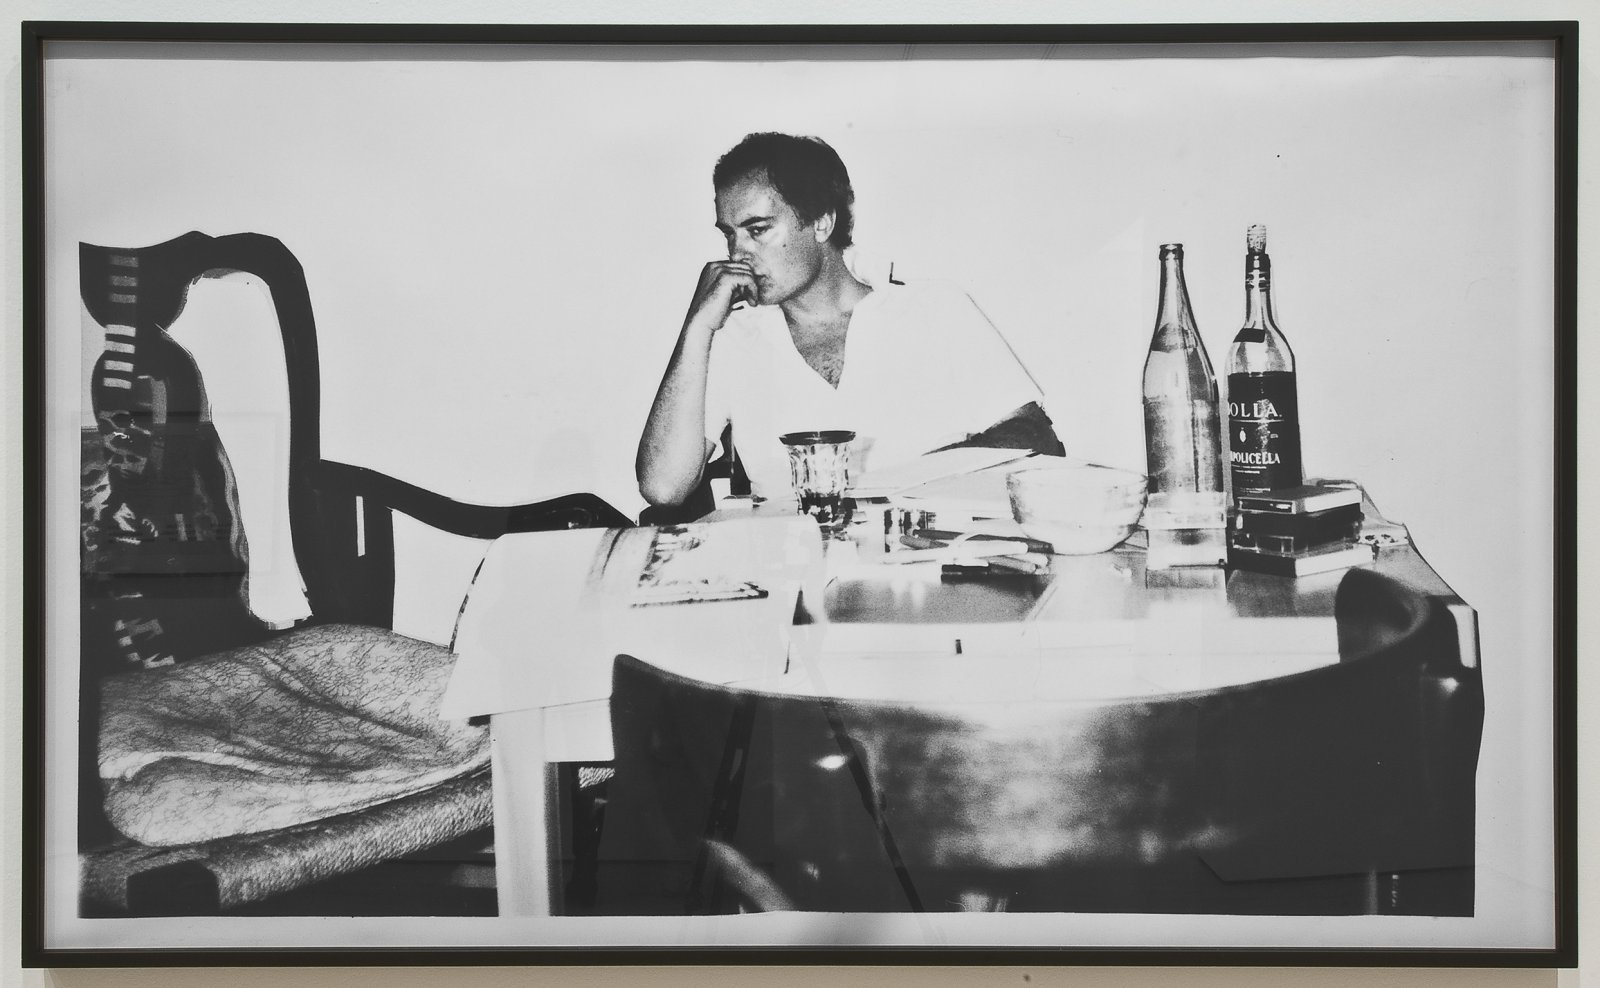 Ian Wallace, Critic at Work, 1983, black and white photograph, 42 x 72 in. (107 x 183 cm) by Ian Wallace